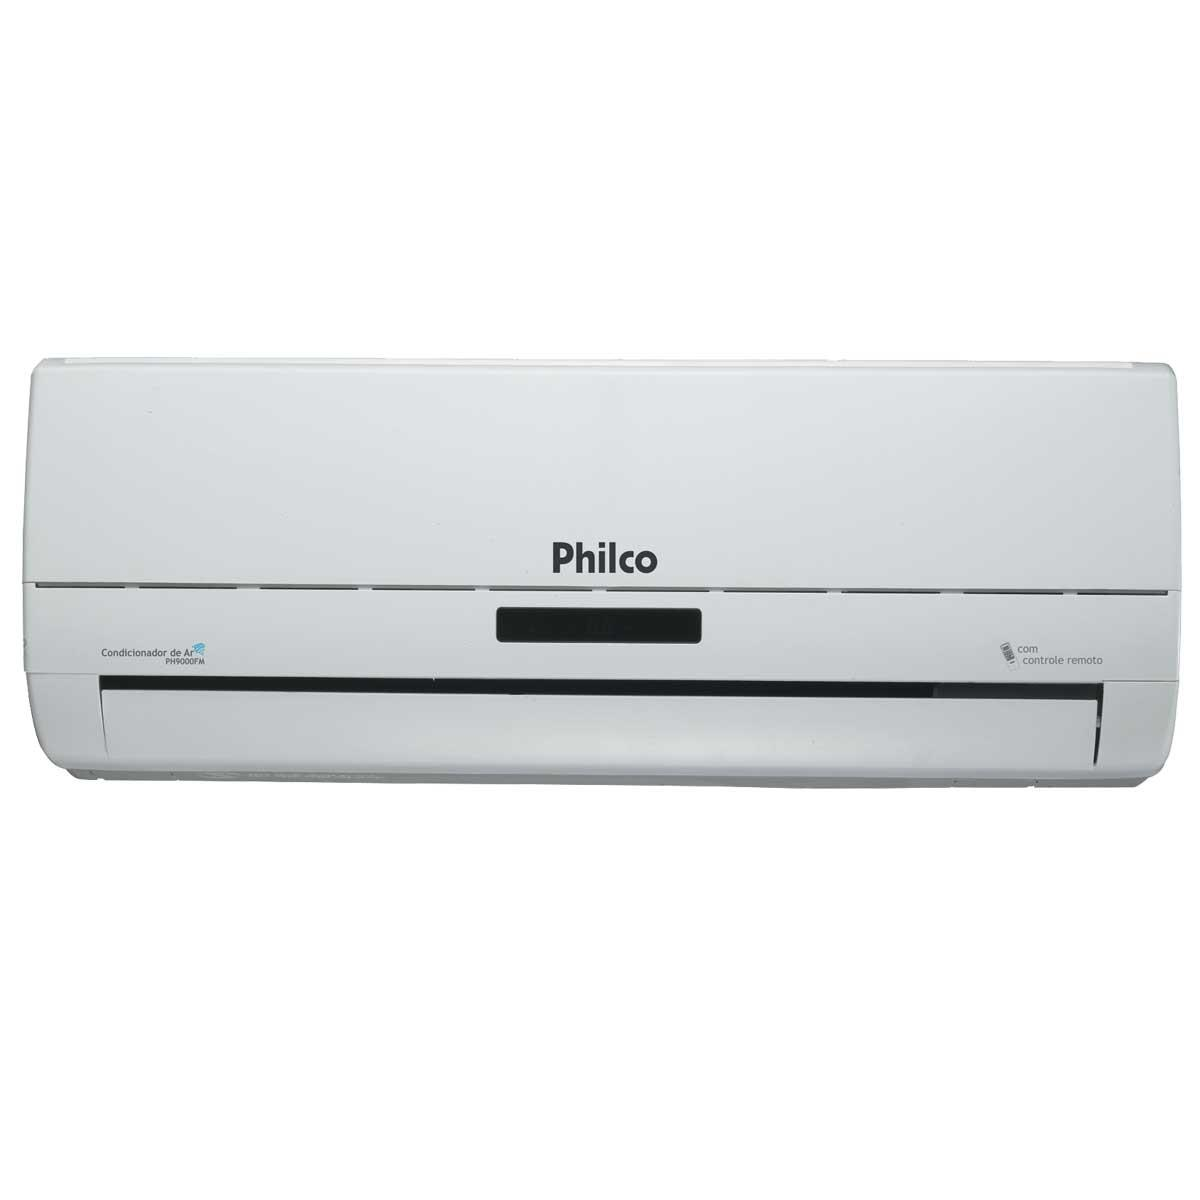 SPLIT HI WALL 24000 BTUS Q/F PHILCO